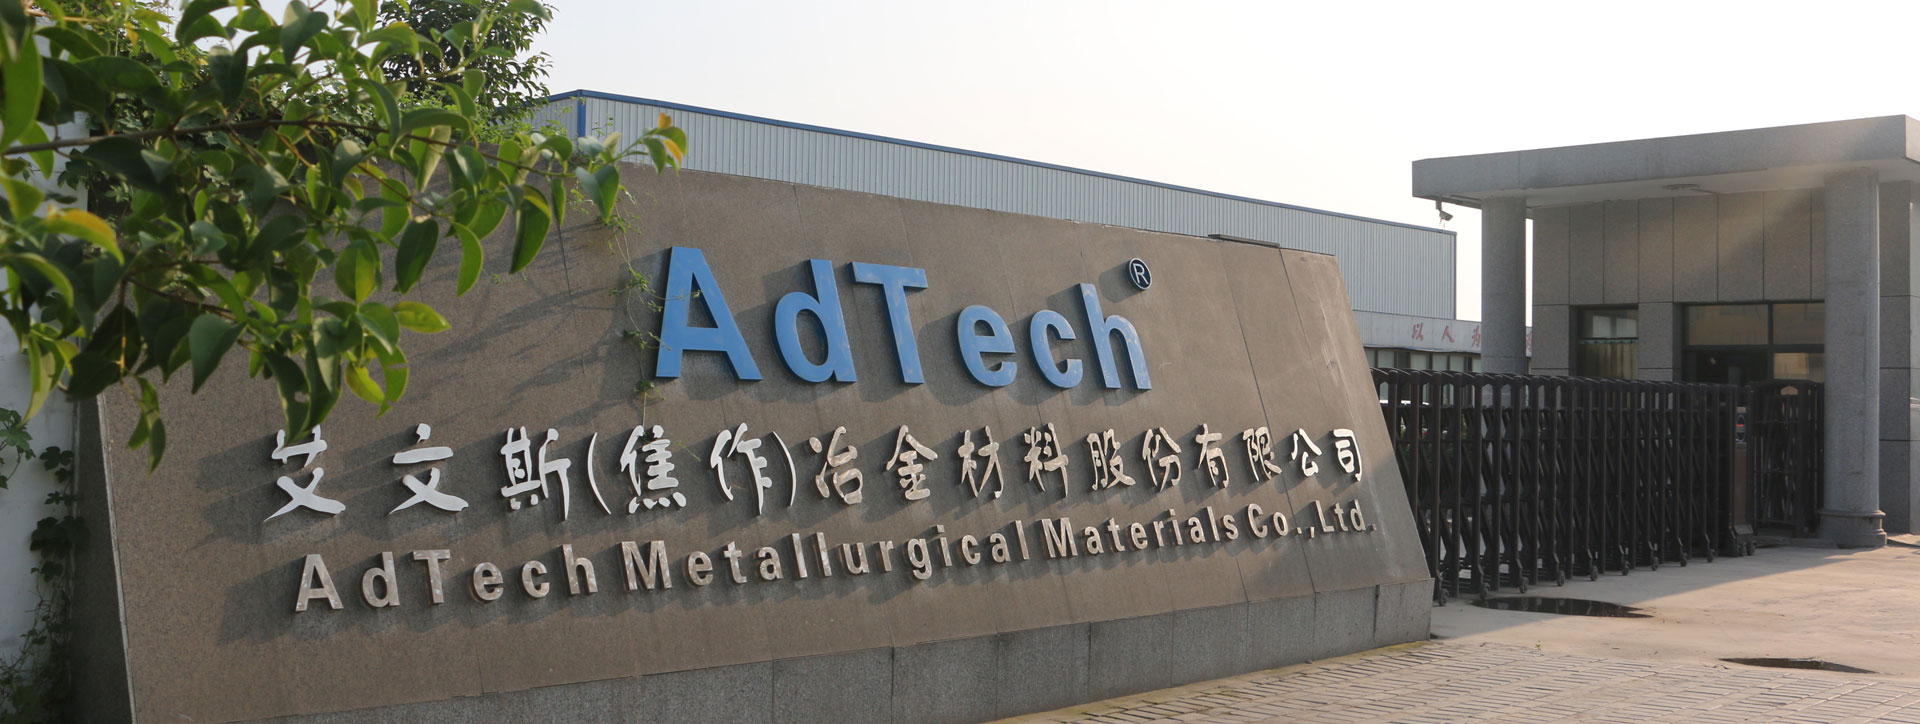 AdTech Metallurgical Materials Co.,Ltd.